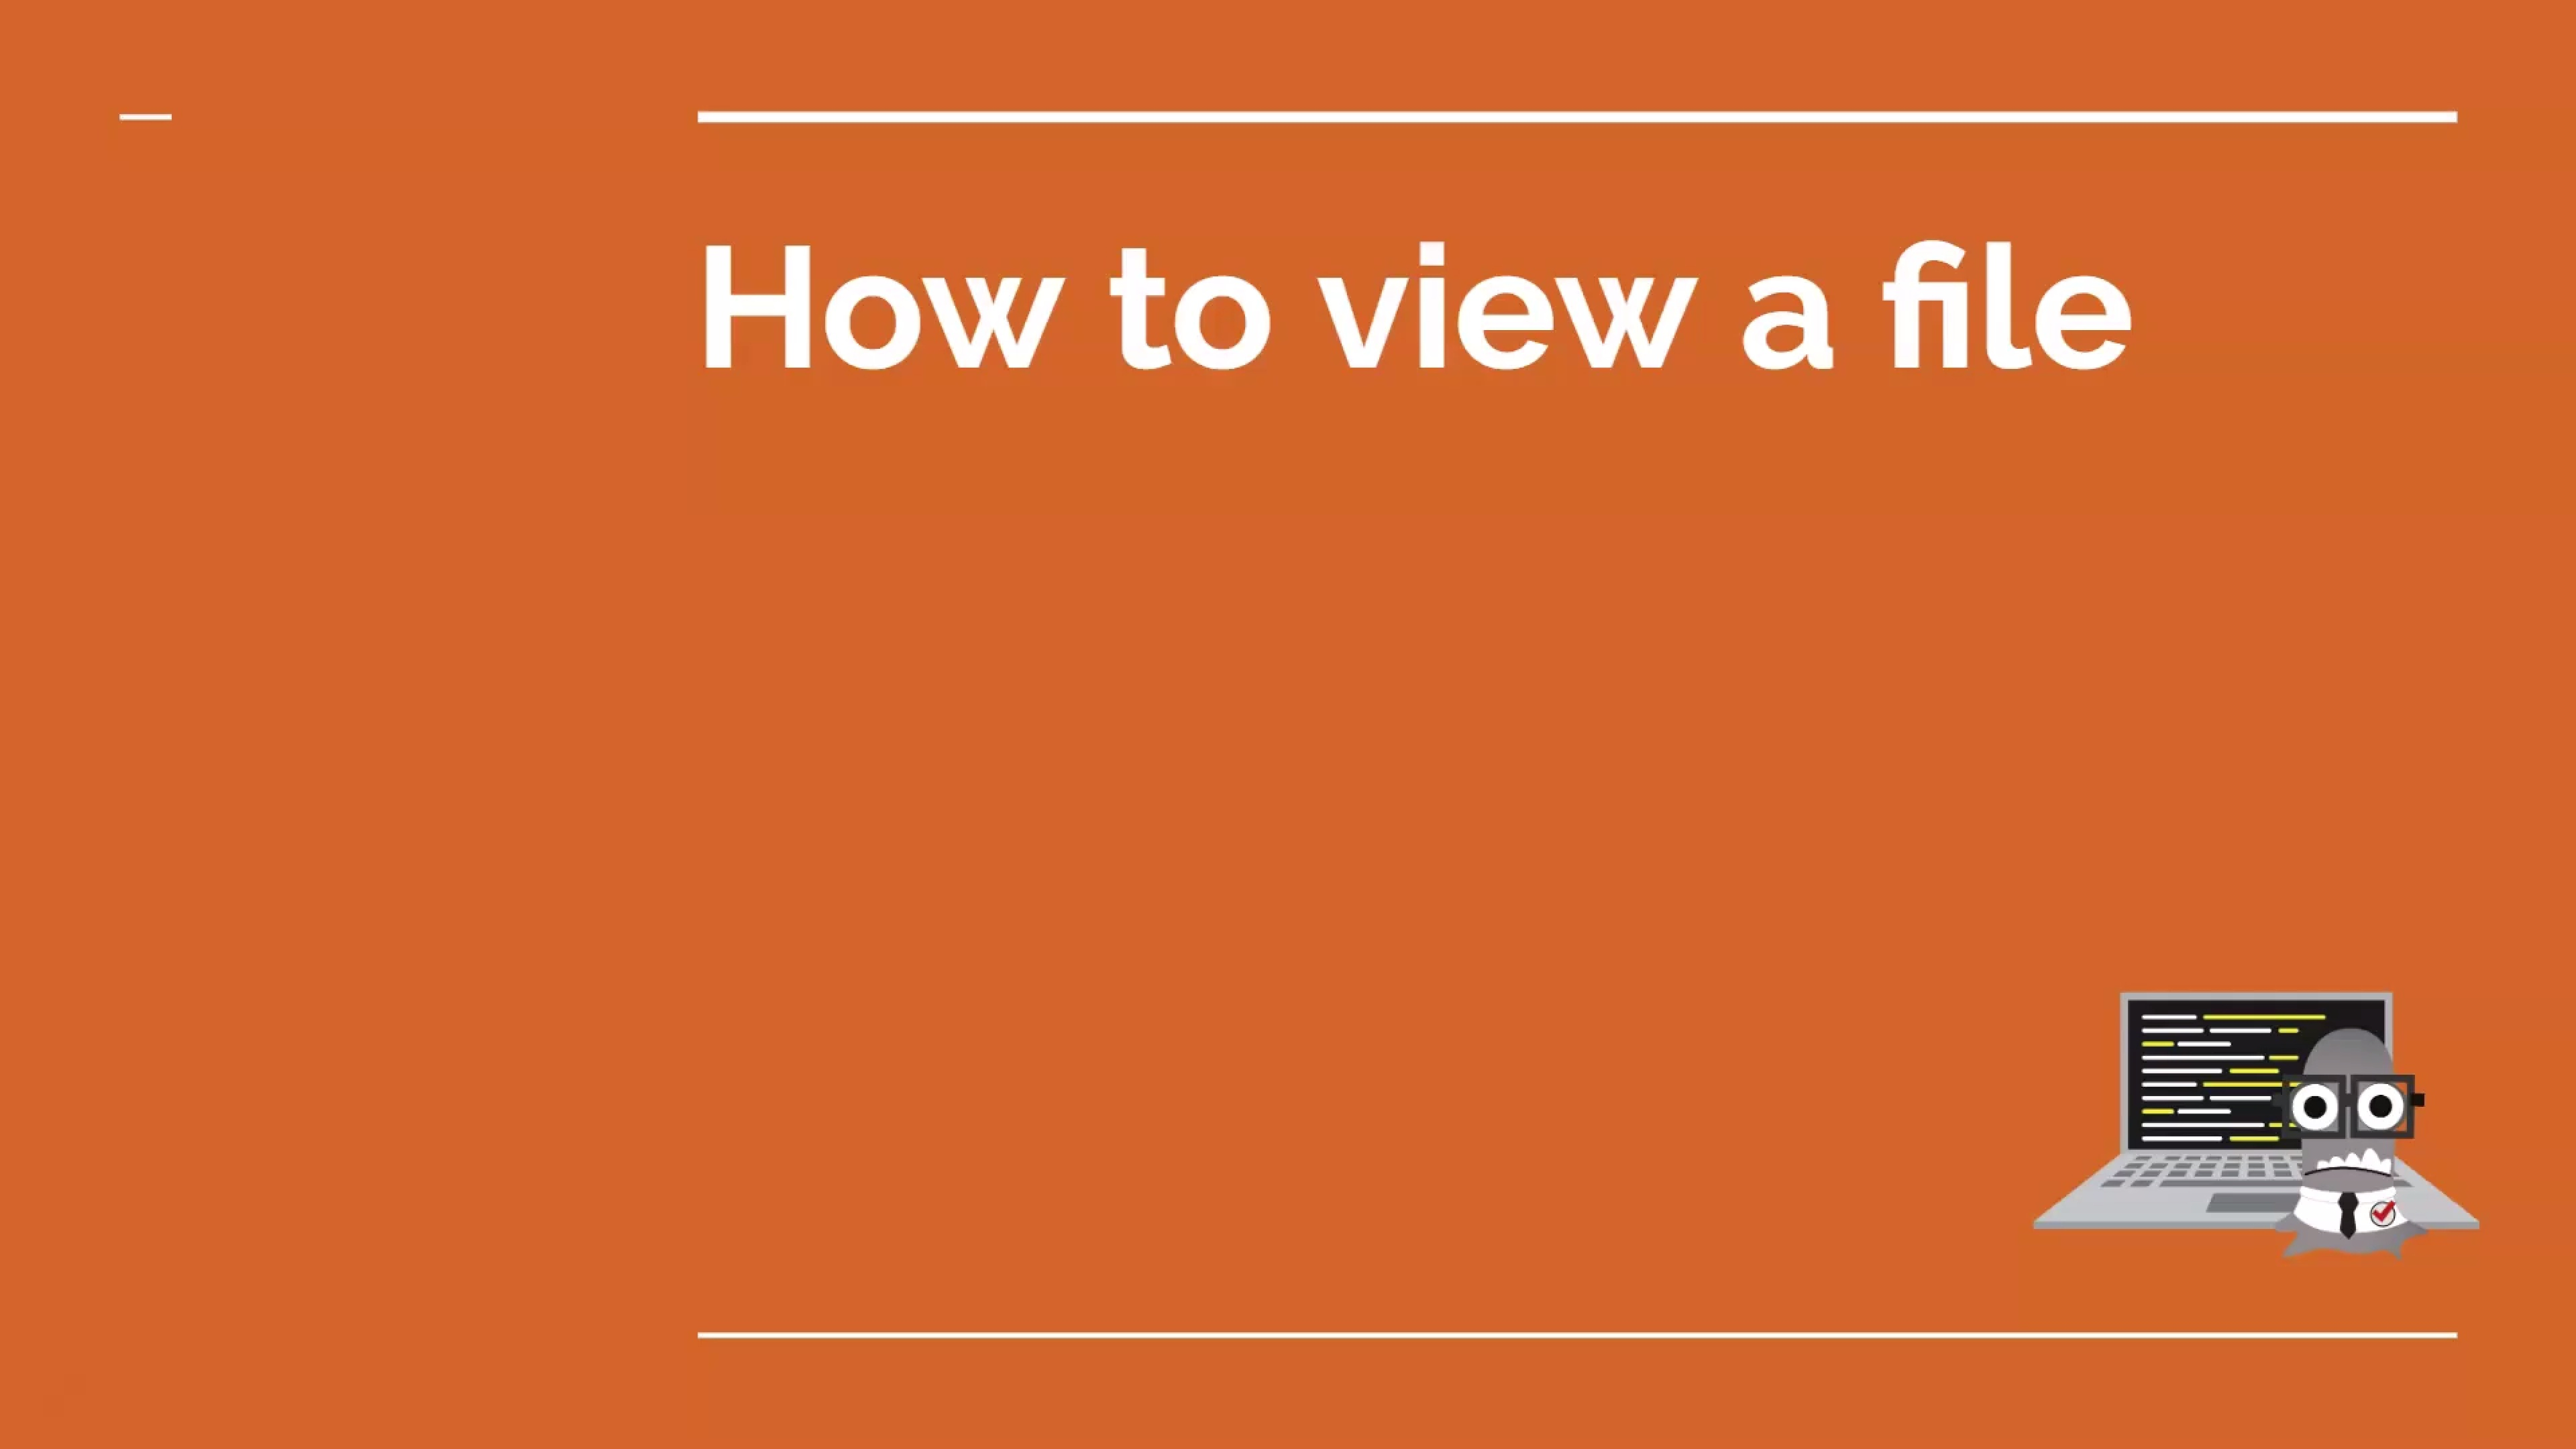 How to View a File